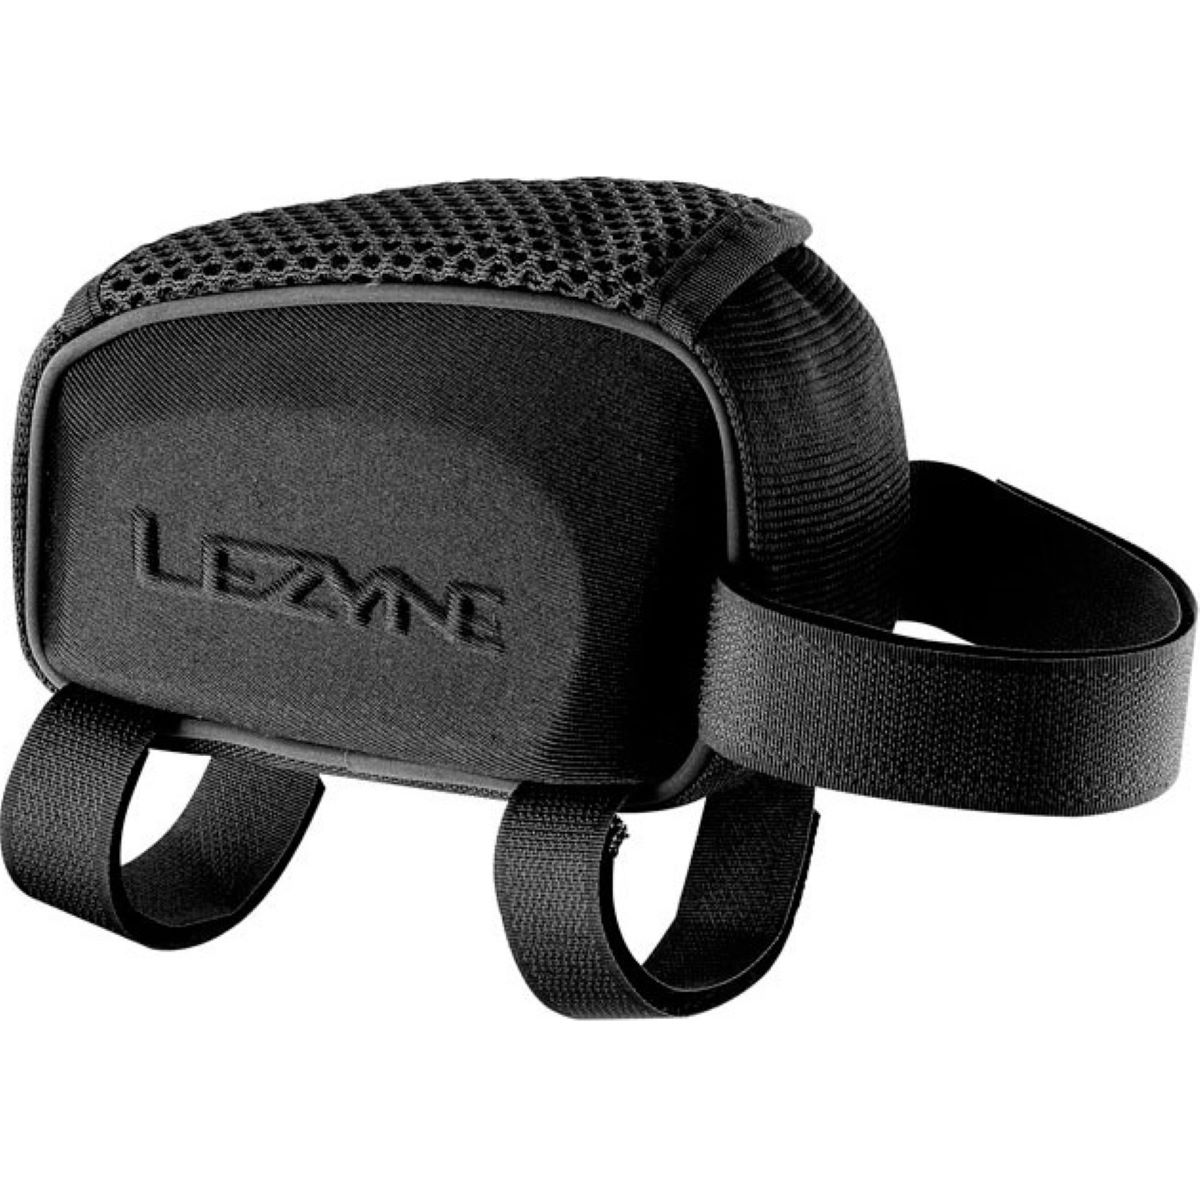 Lezyne Energy Caddy Nutrition Bag